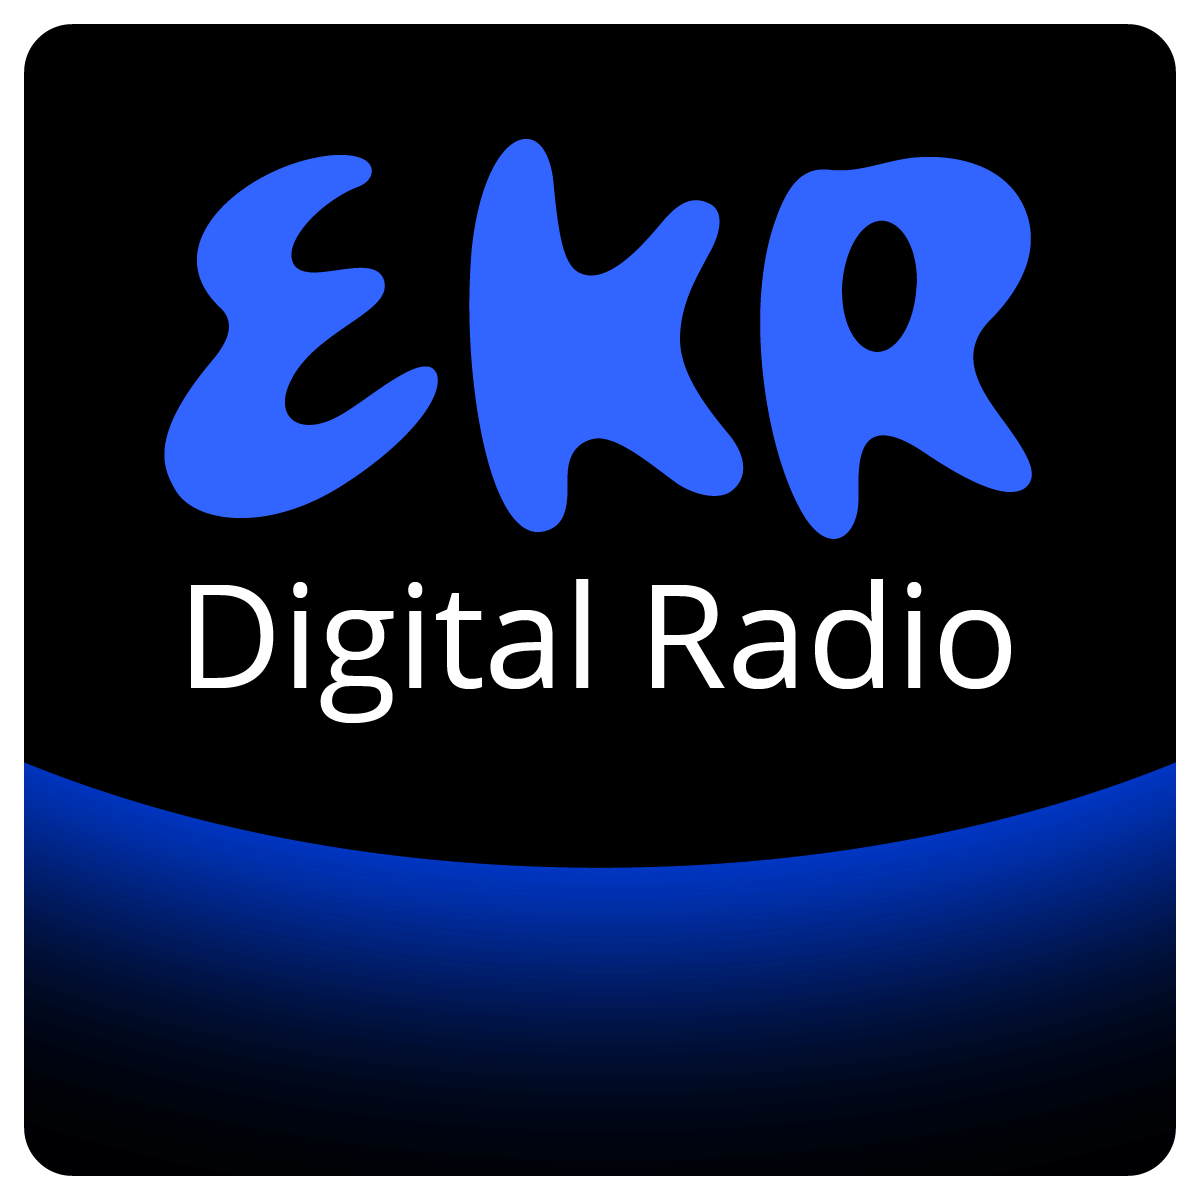 EKR - RETRO ROCK (http://ekrdigital.com/player/#/retro-rock)